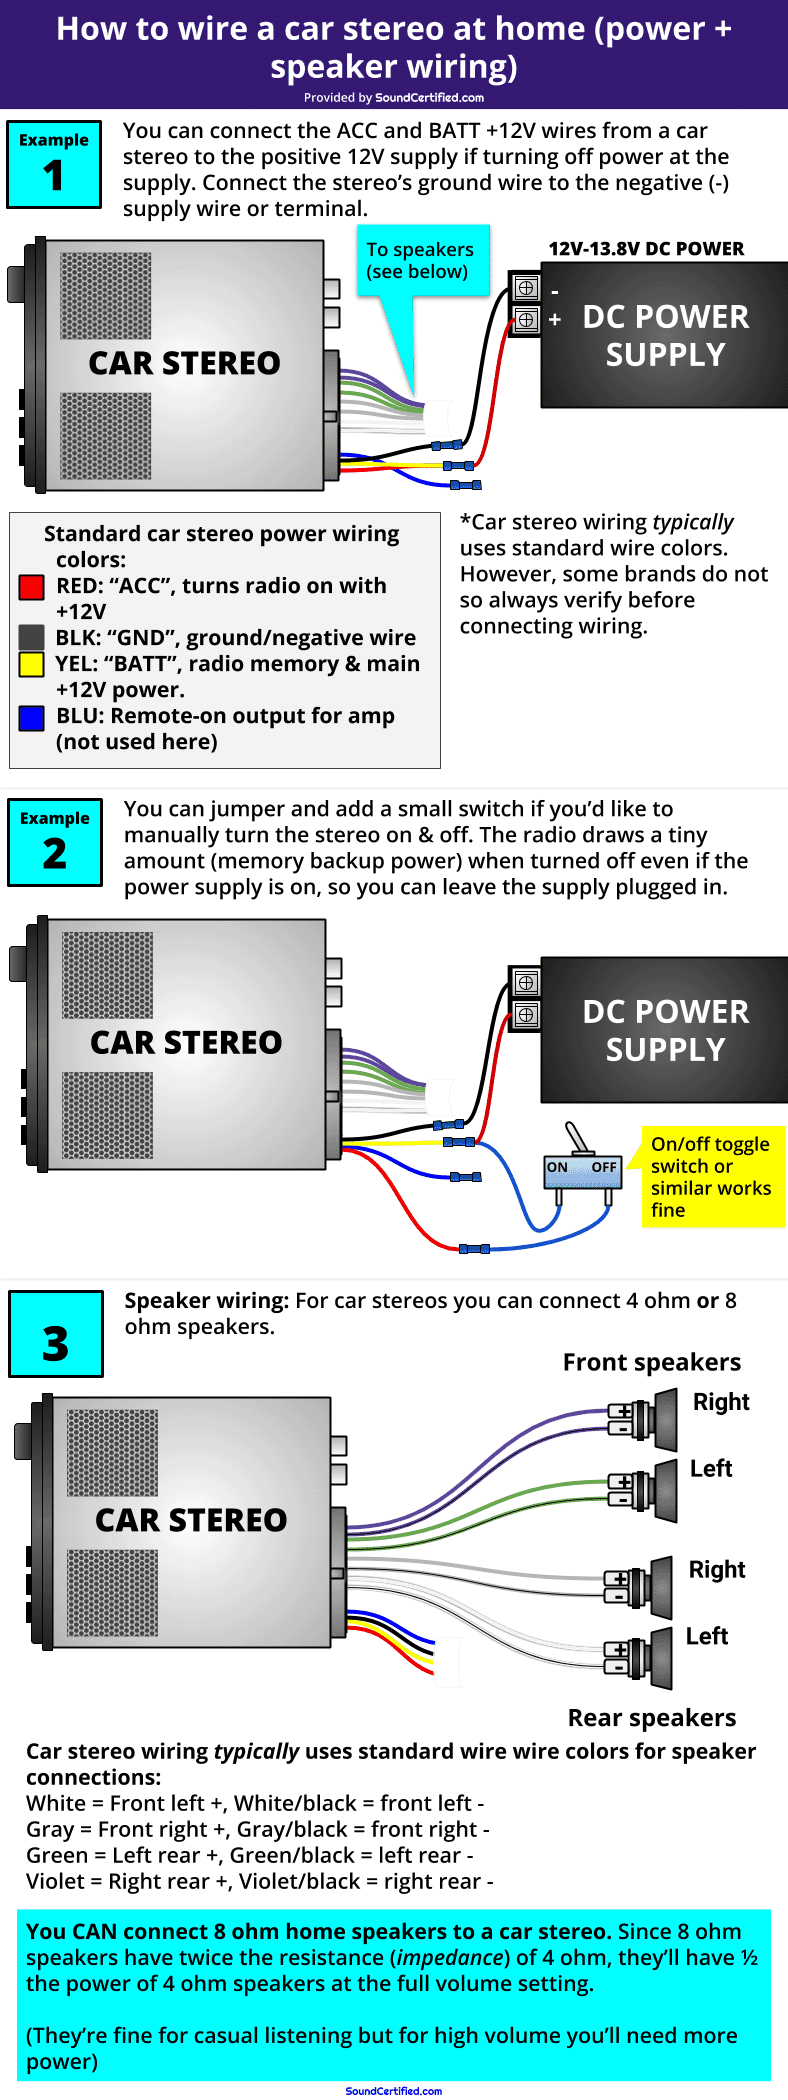 How To Hook Up A Car Stereo Ac Power